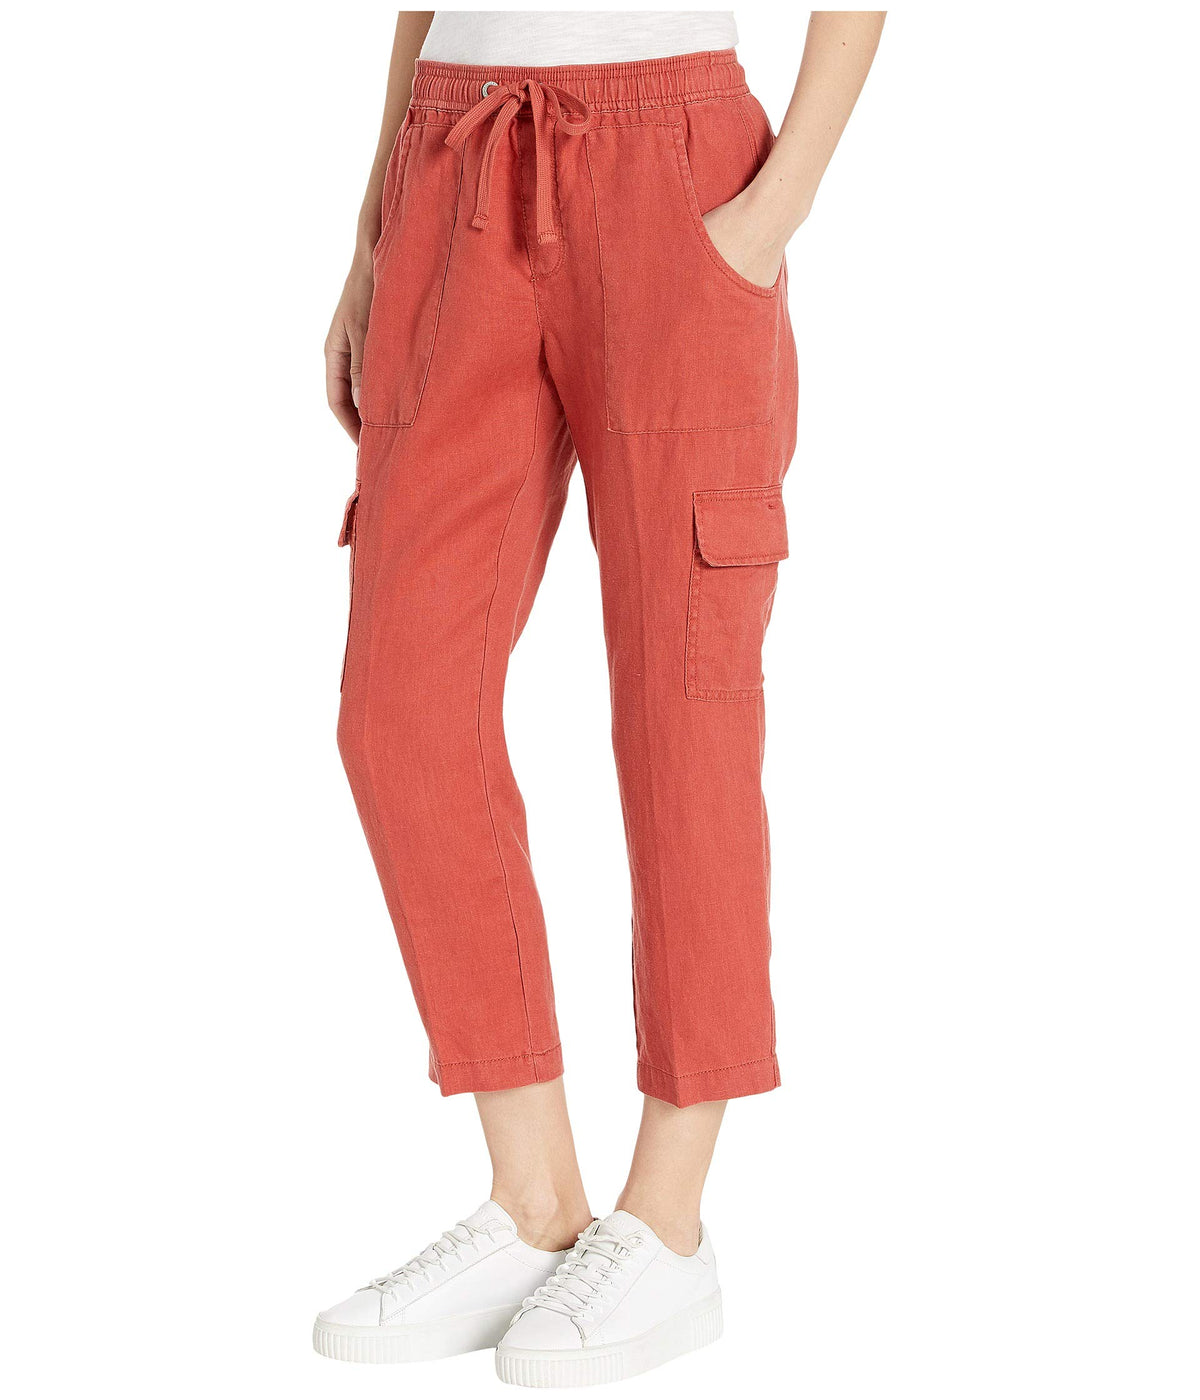 Discover Pull-On Linen Cargo Pants